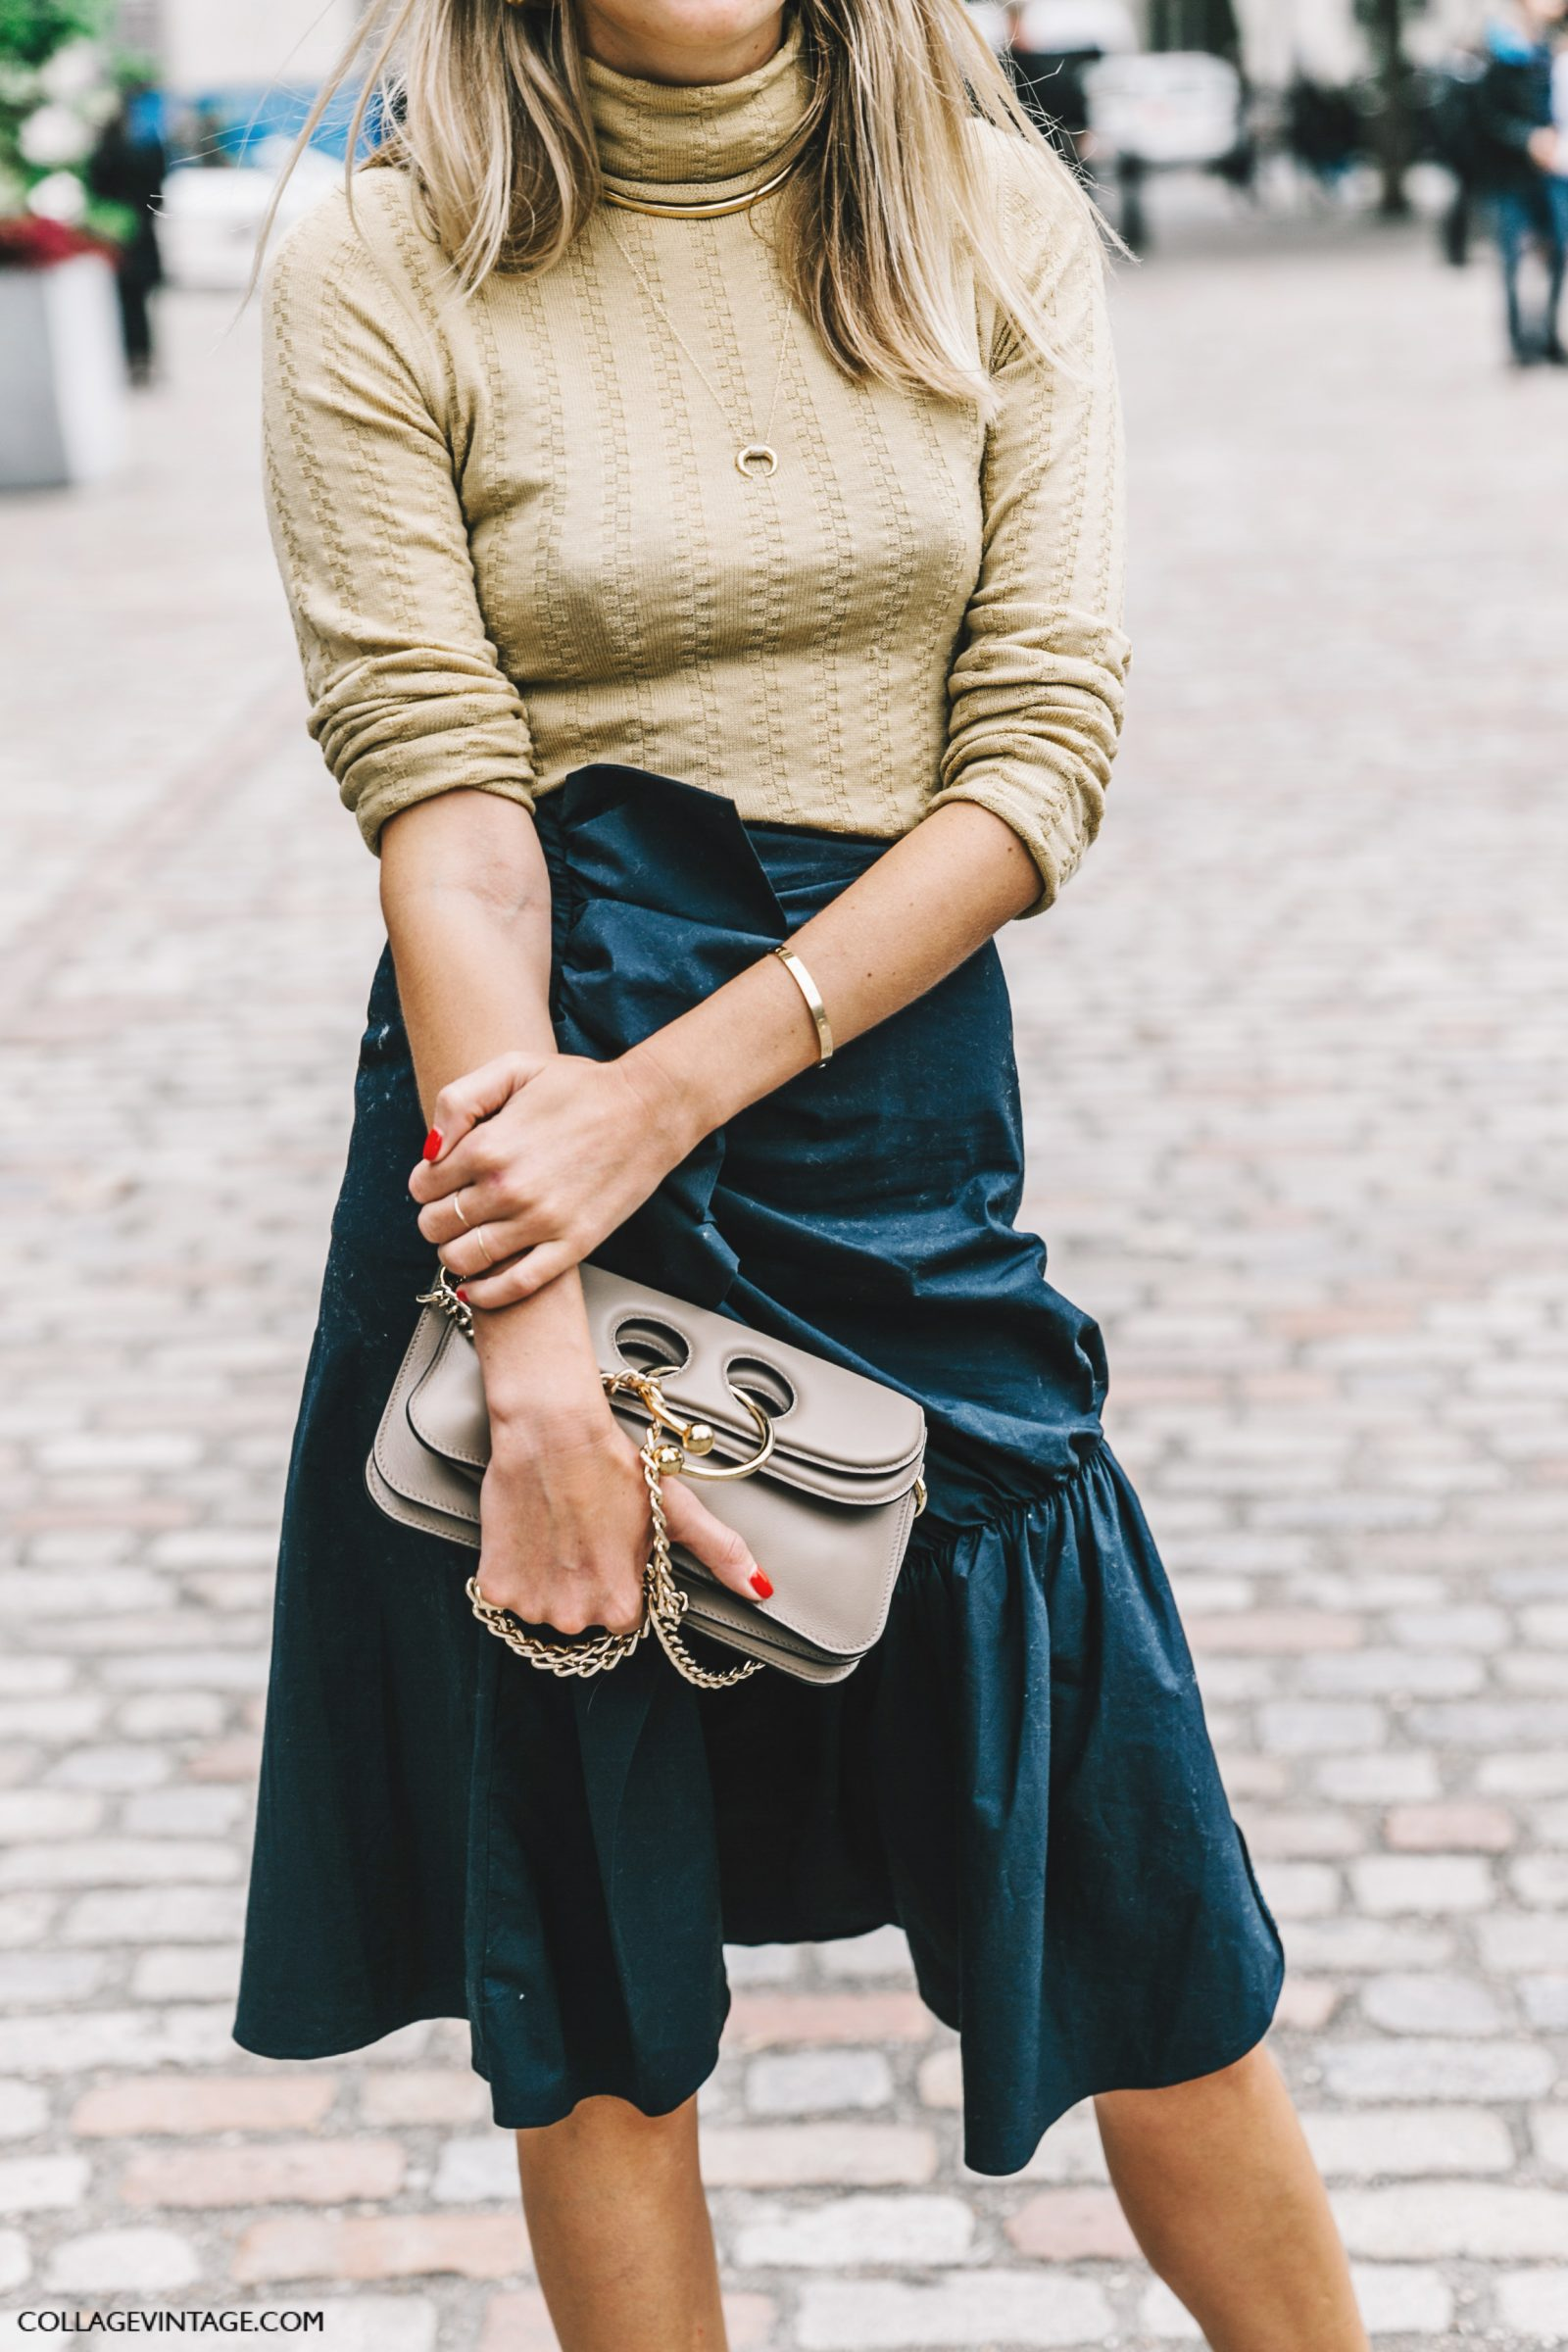 lfw-london_fashion_week_ss17-street_style-outfits-collage_vintage-vintage-topshop_unique-anya-mulberry-preen-121